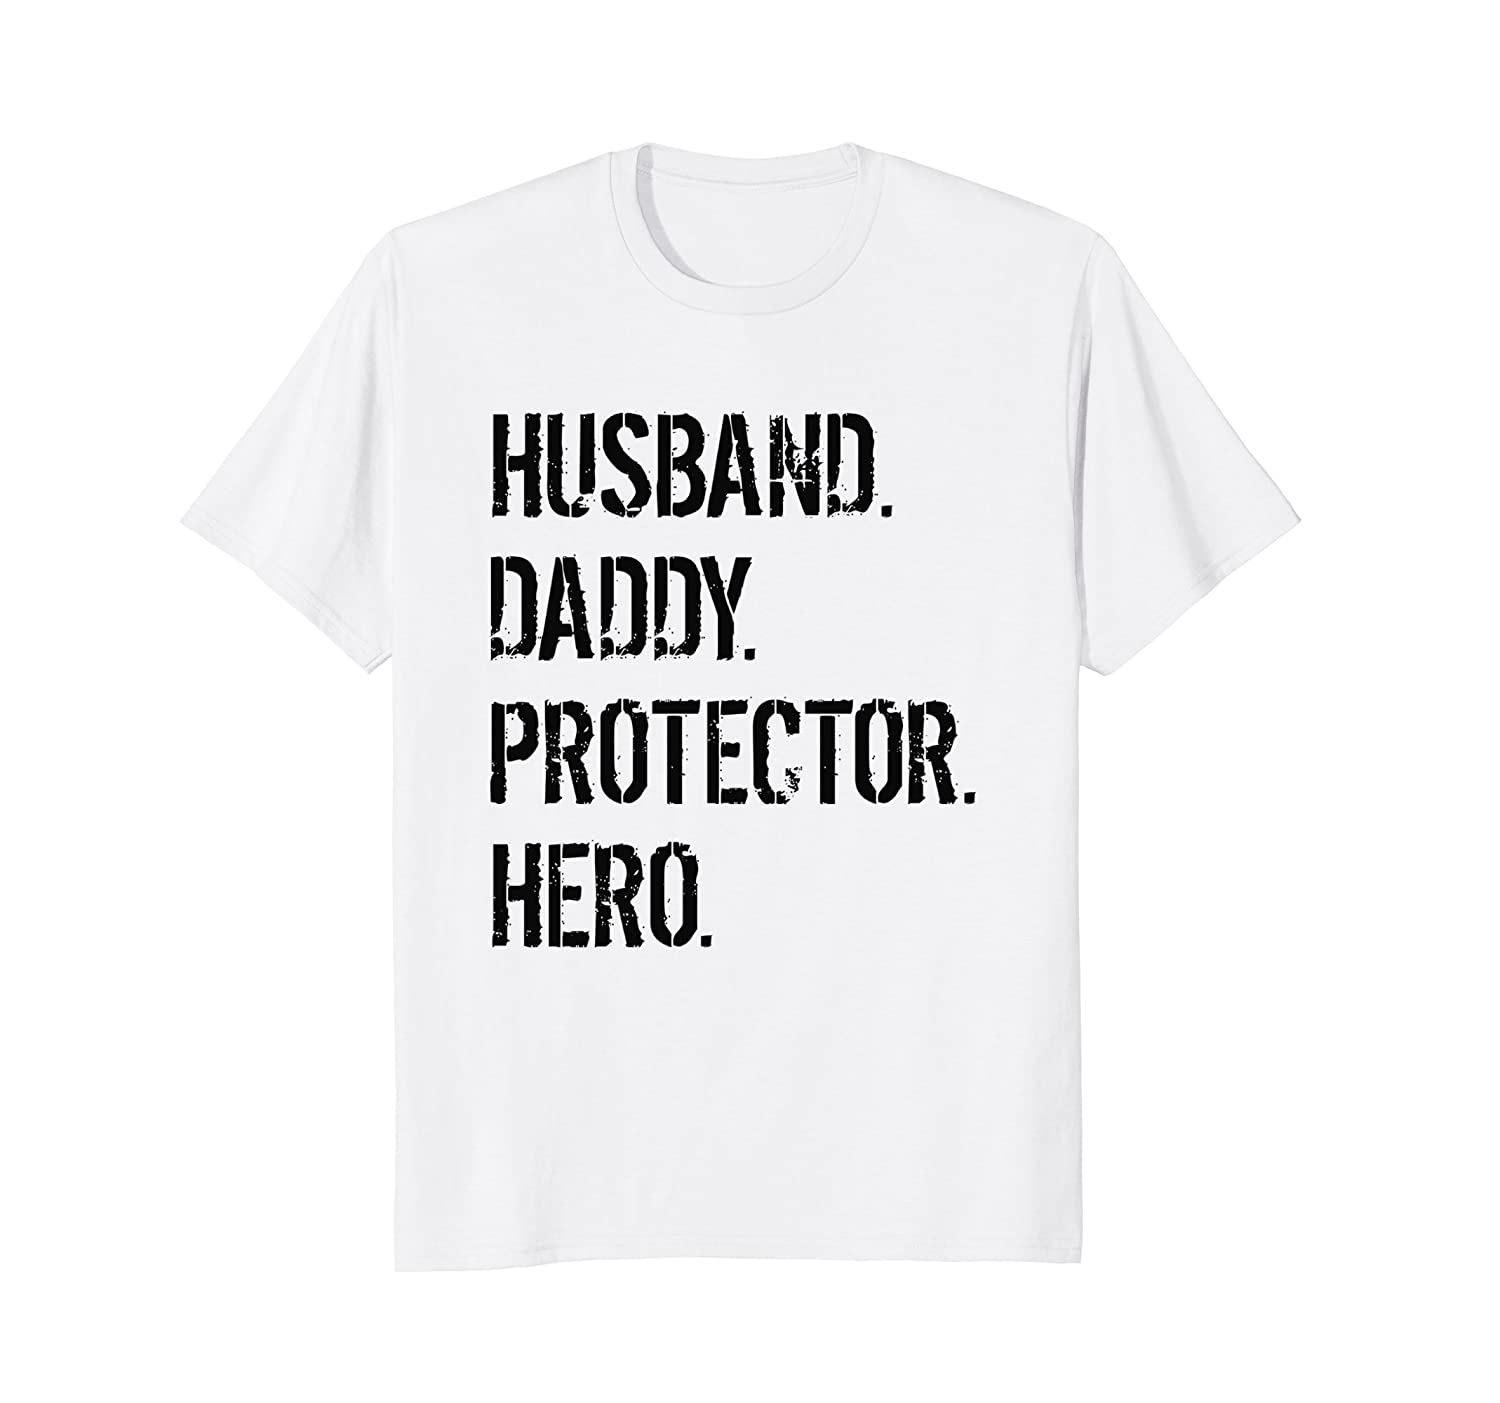 6fc5bb5c6 Cool Father Gift Shirt Husband Daddy Protector Hero T-Shirt-TH ...